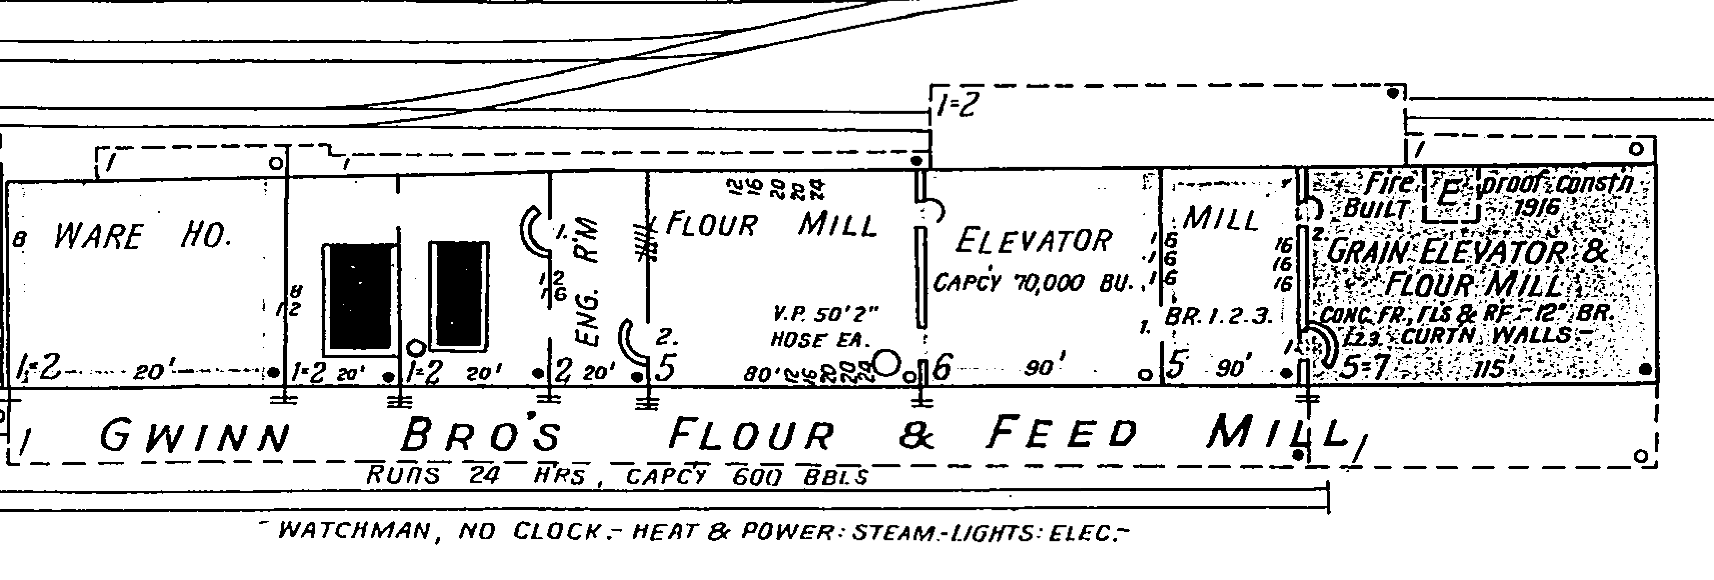 Sketch of the Gwinn Bros. Mill from the 1931 Sanborn fire maps